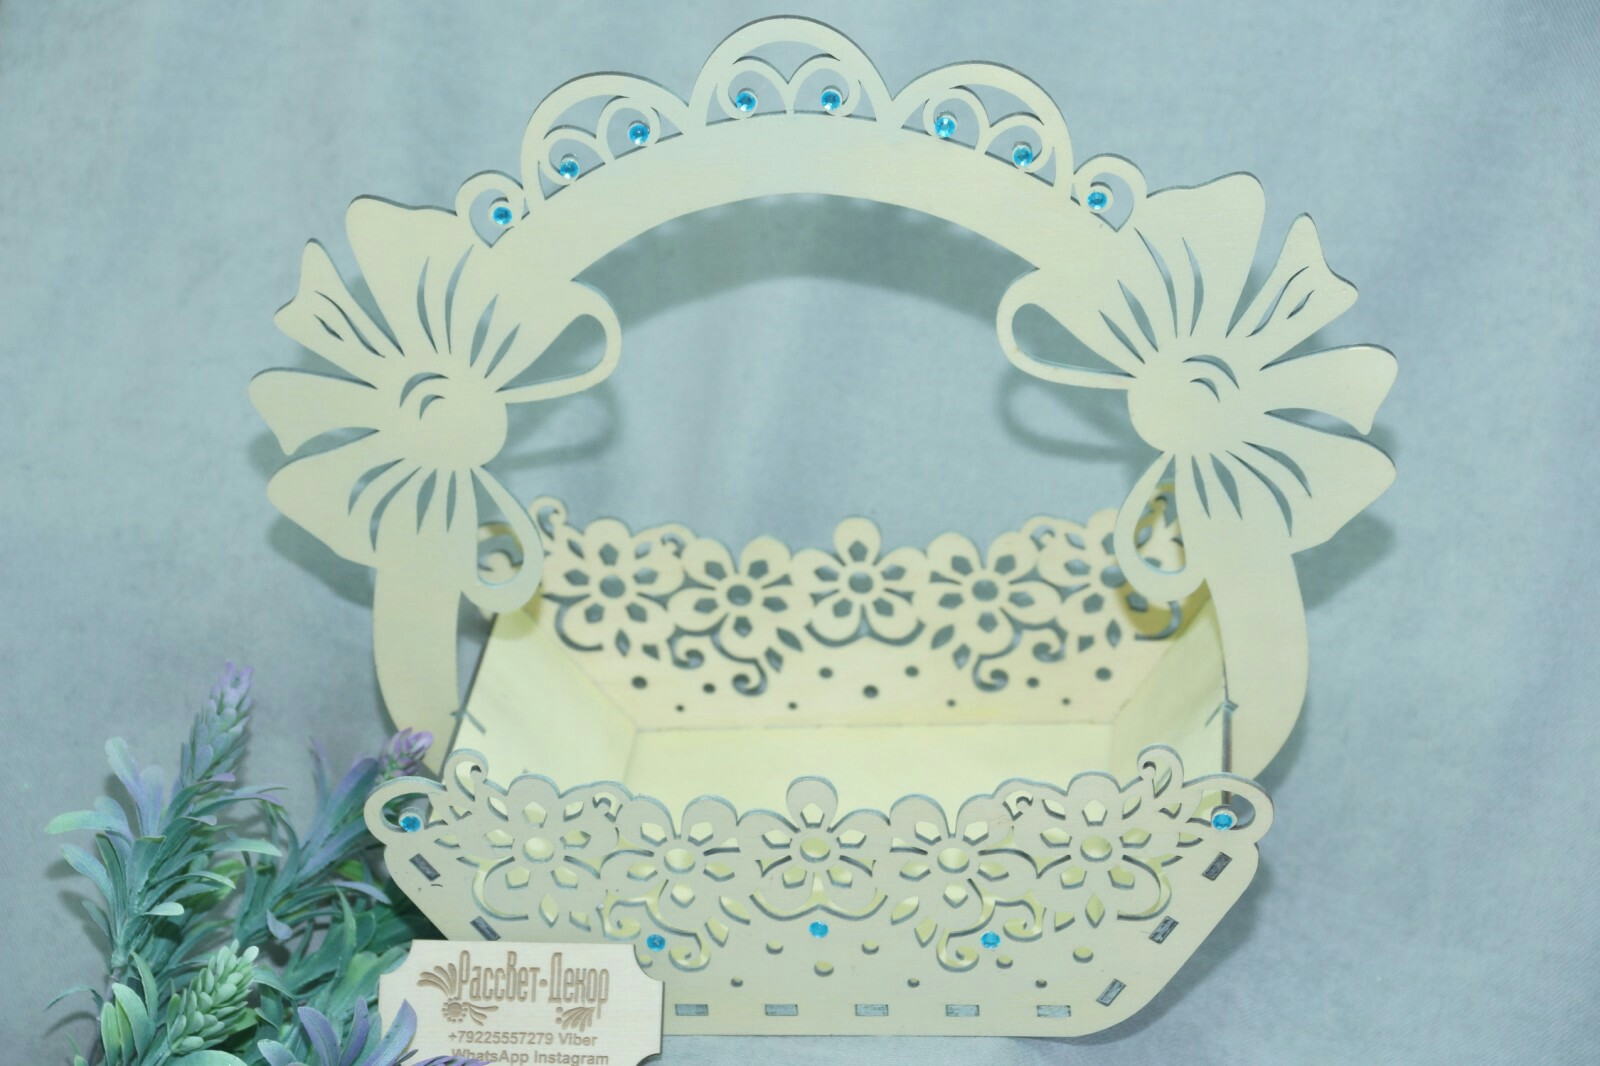 Laser Cut Wooden Gift Basket With Bow Ribbon Free Vector